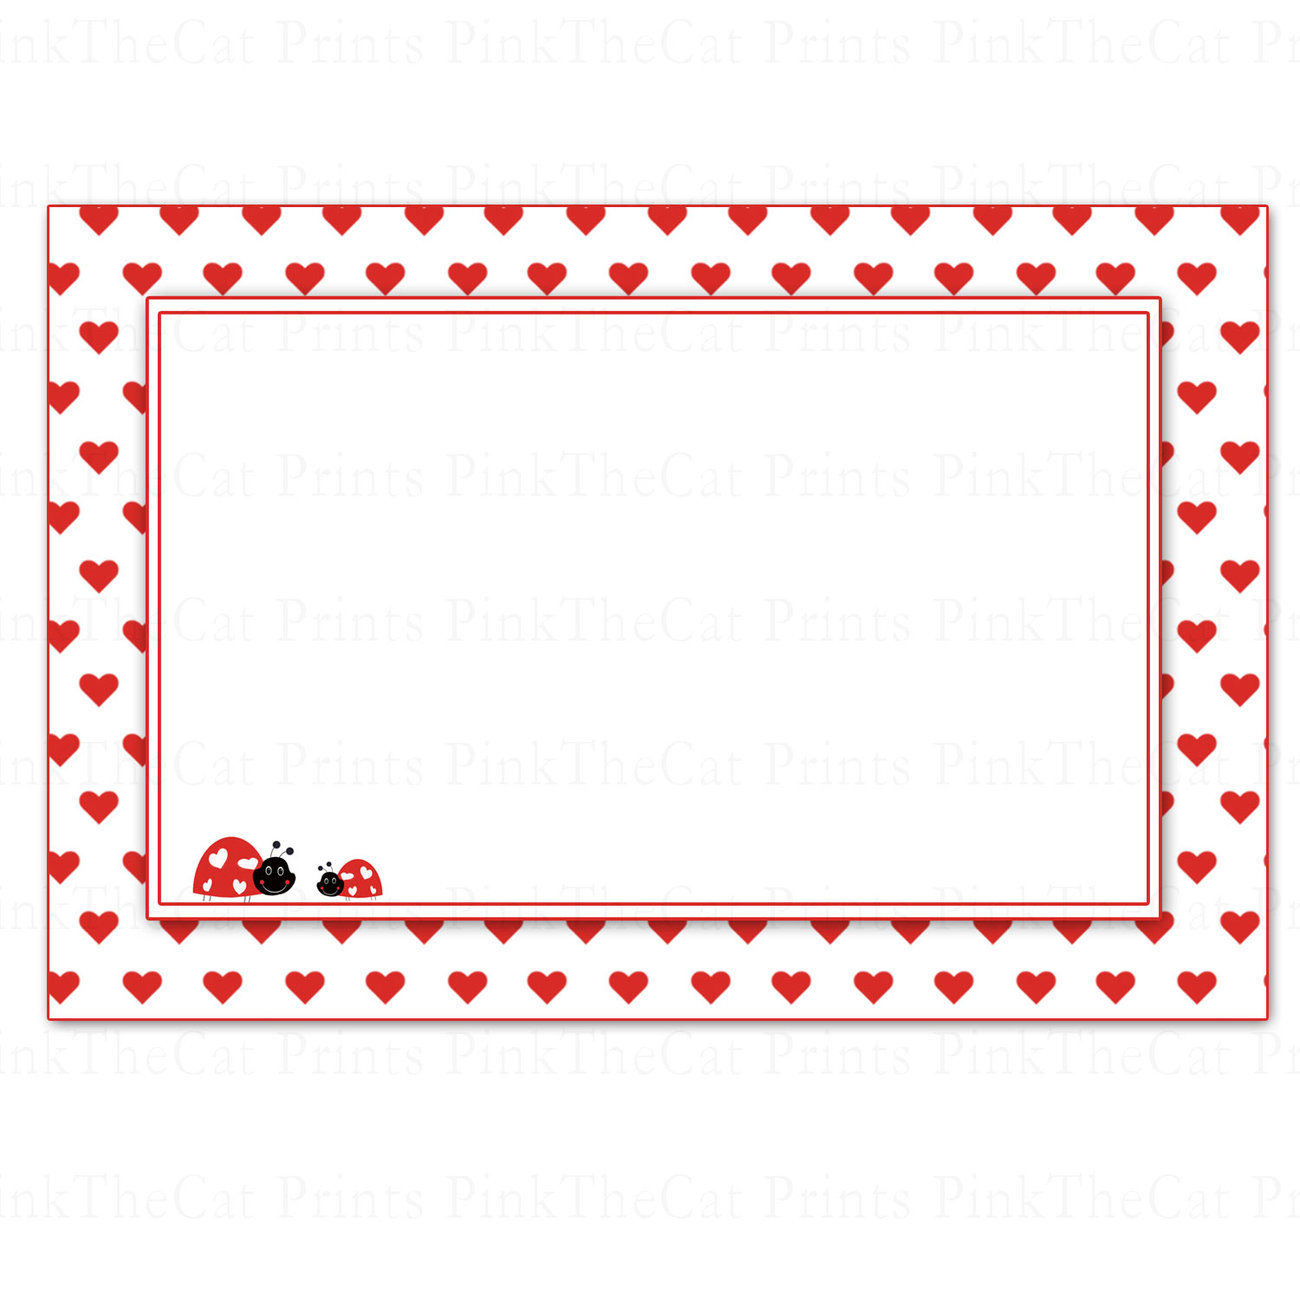 Printable Blank Valentines Love Day Note And 13 Similar Items